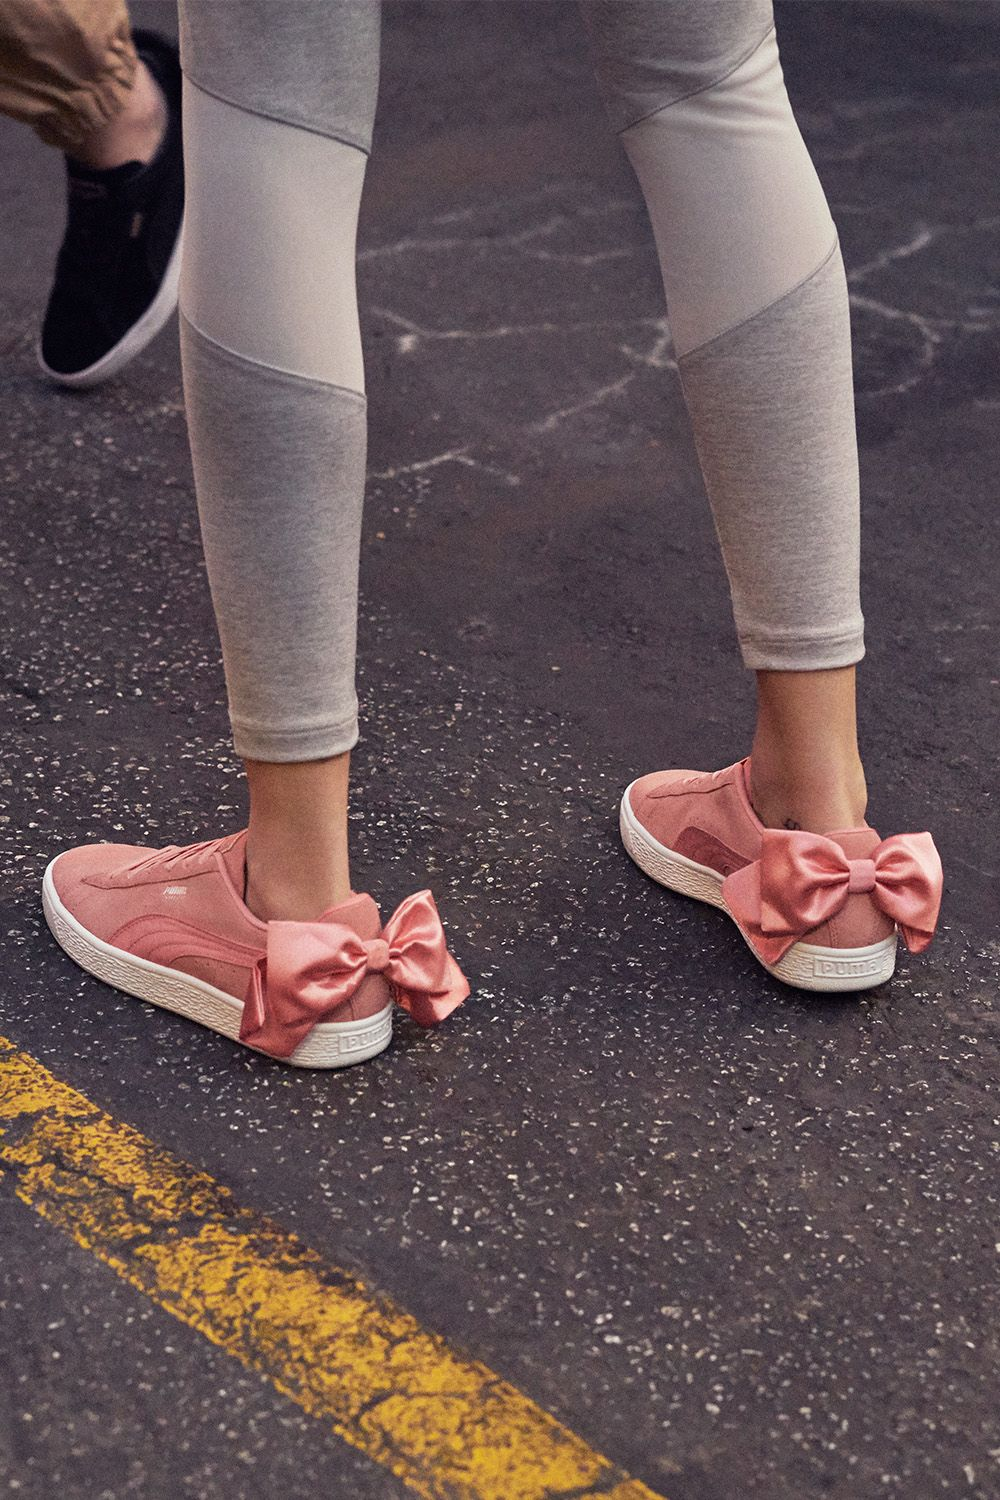 8fd00cb592f Puma Suede Bow #kultsneaker #sneaker #puma #bow #rosa #pink #trend #style  #fashion #mode #schuhe #glamour #glamourgermany